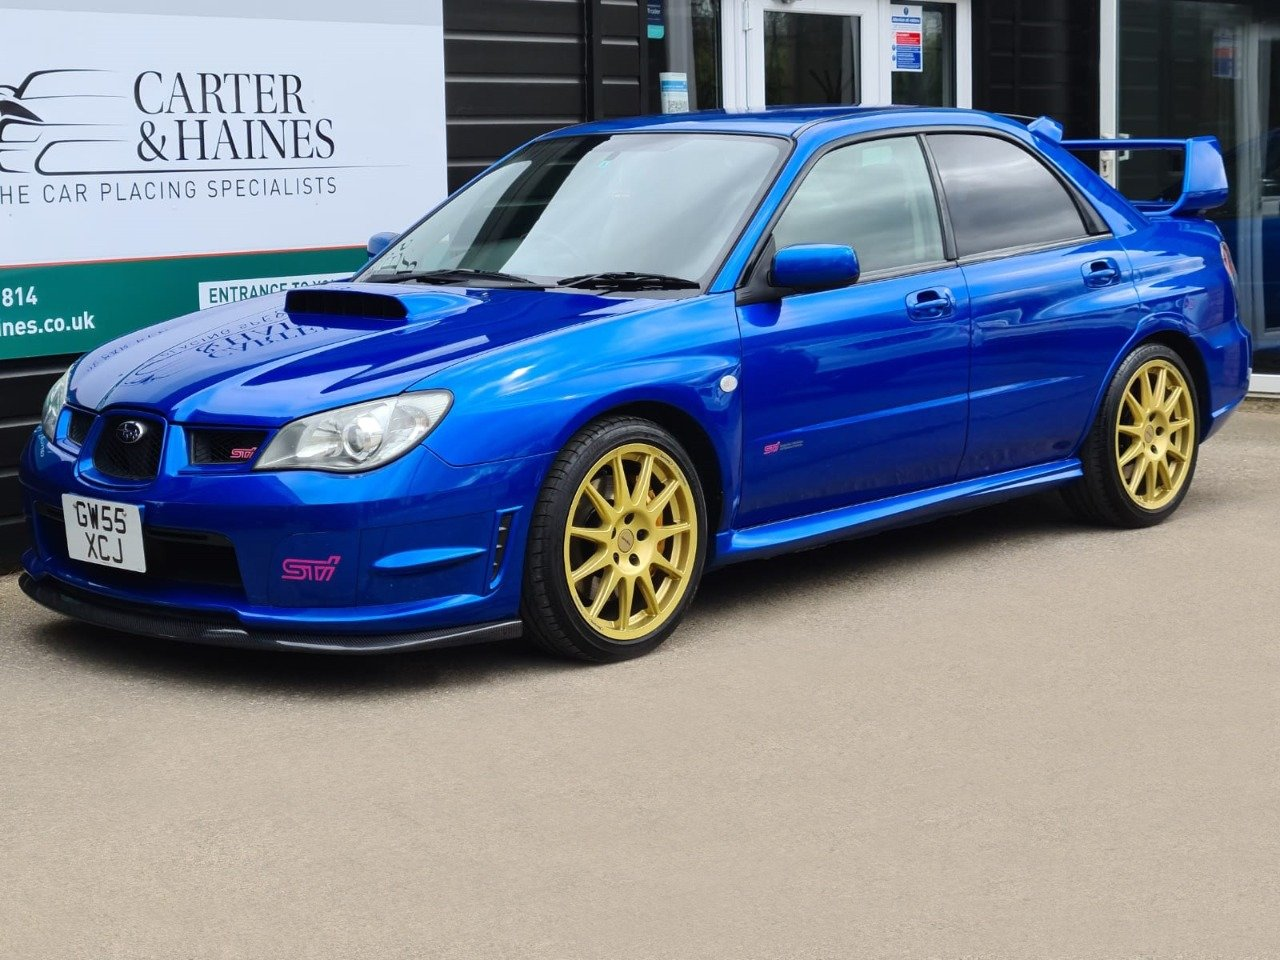 IMPREZA WRX STI (2006/55) Low Tax Band 368 BHP For Sale (picture 1 of 23)